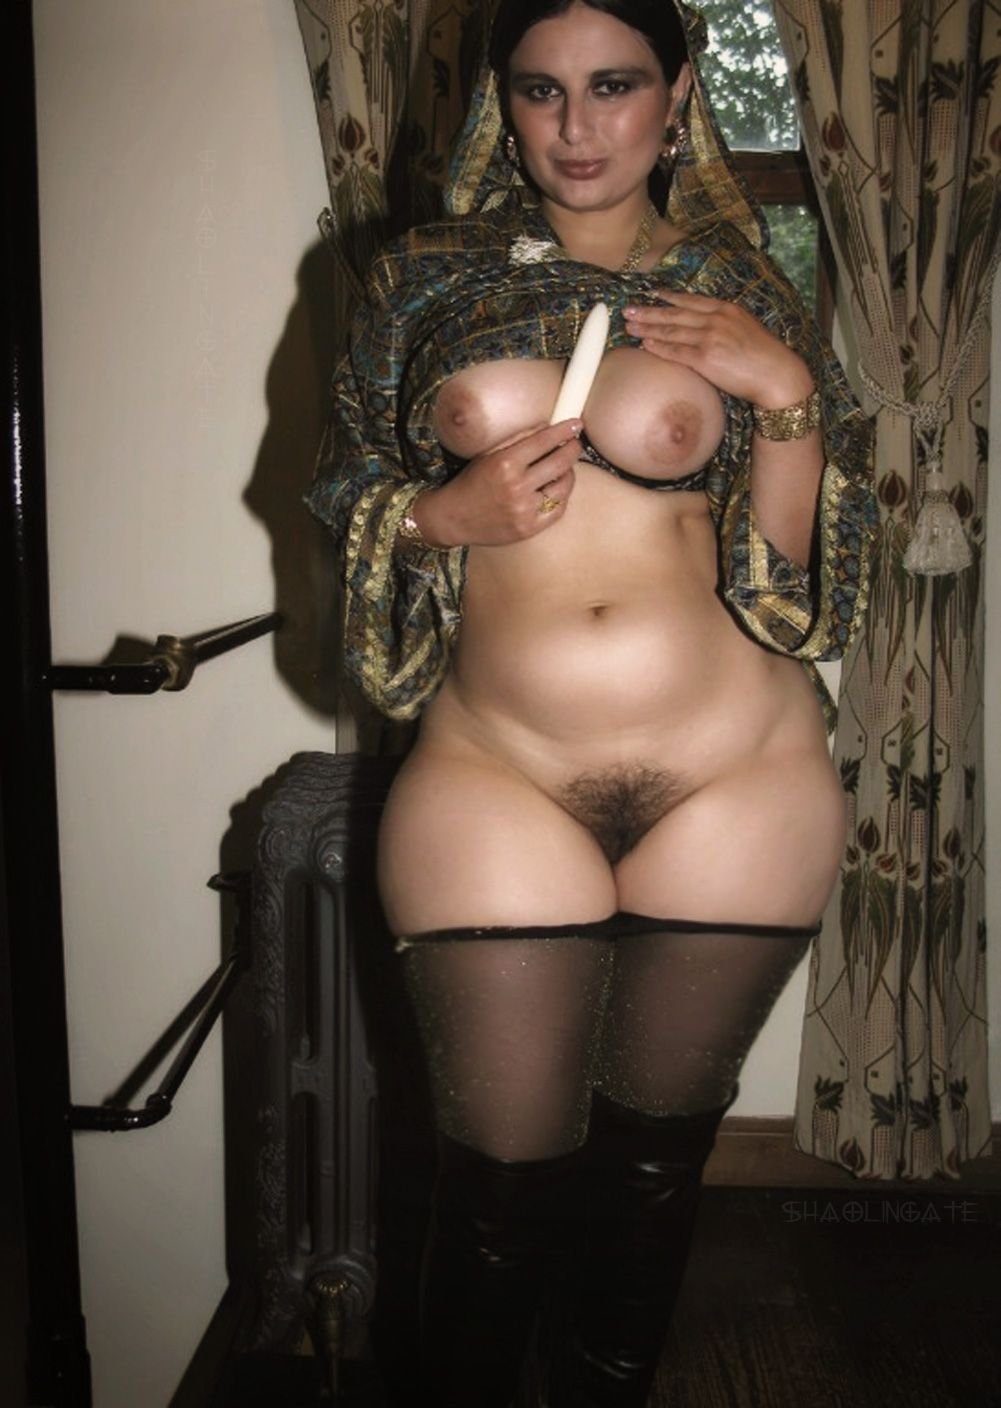 Best Organ Woman Porn Sexy Couples Fucking Slow